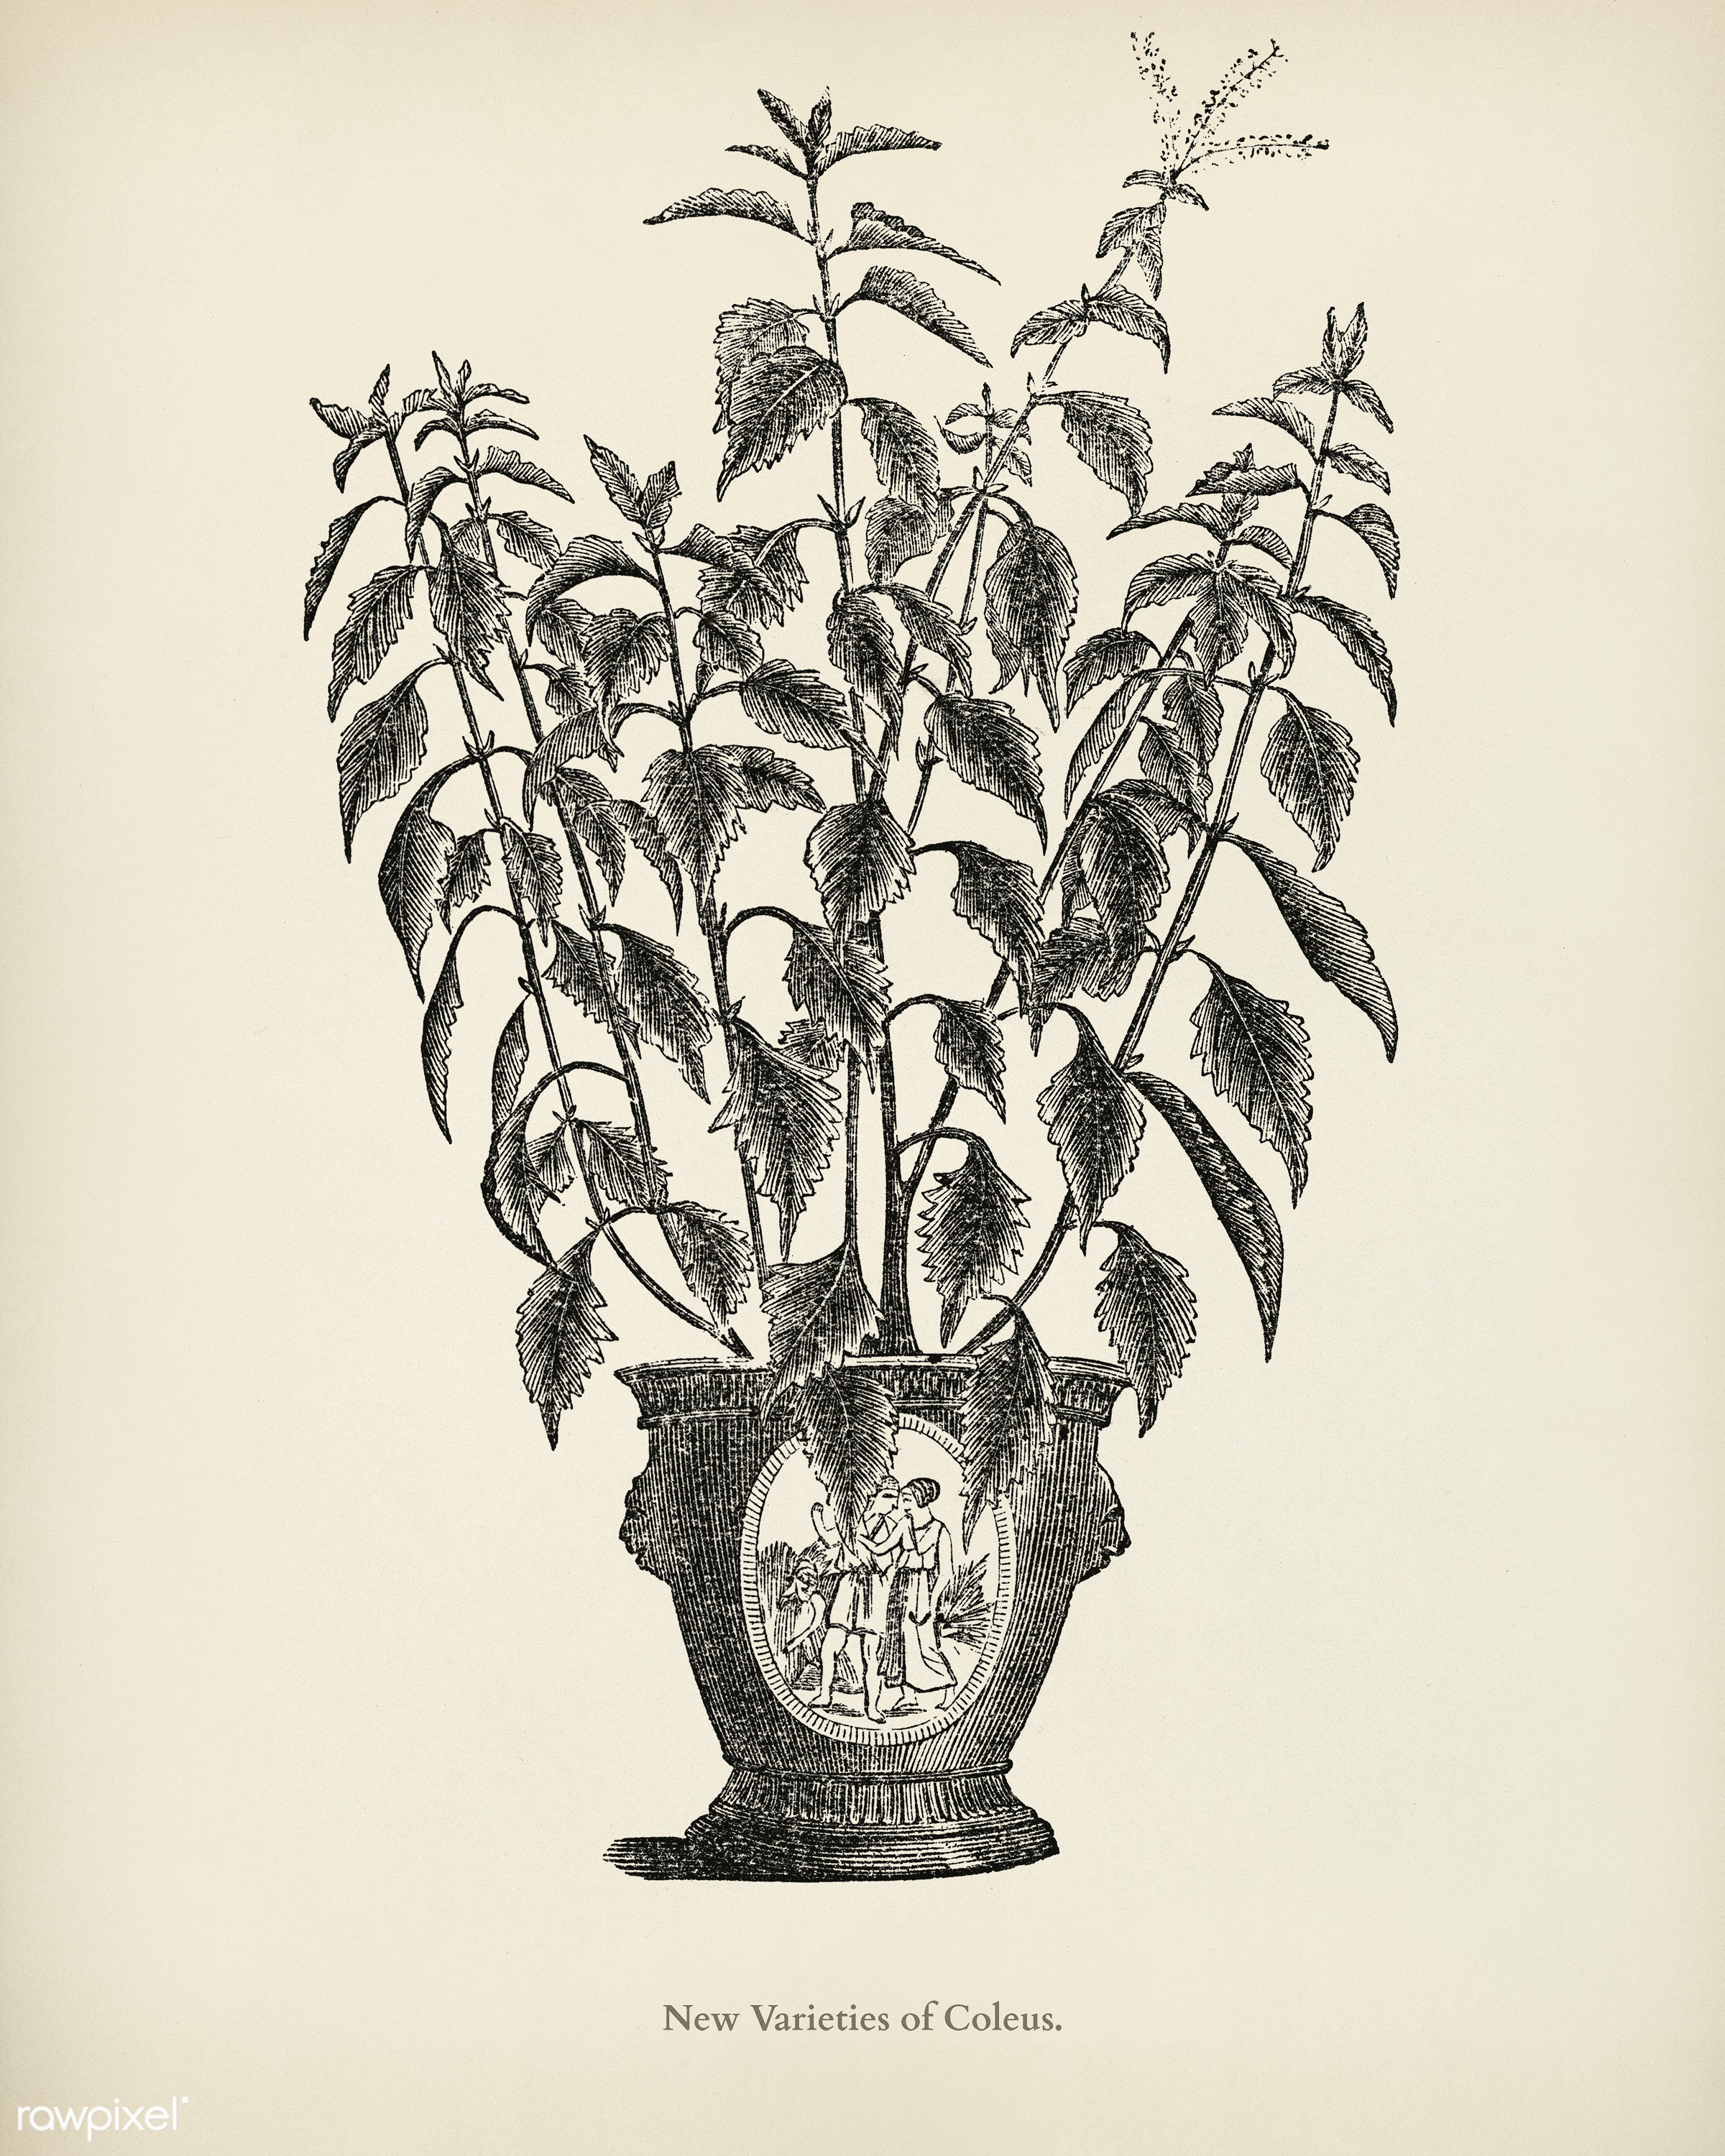 Coleus engraved by Benjamin Fawcett (1808-1893) for Shirley Hibberd's (1825-1890) New and Rare Beautiful-Leaved Plants...